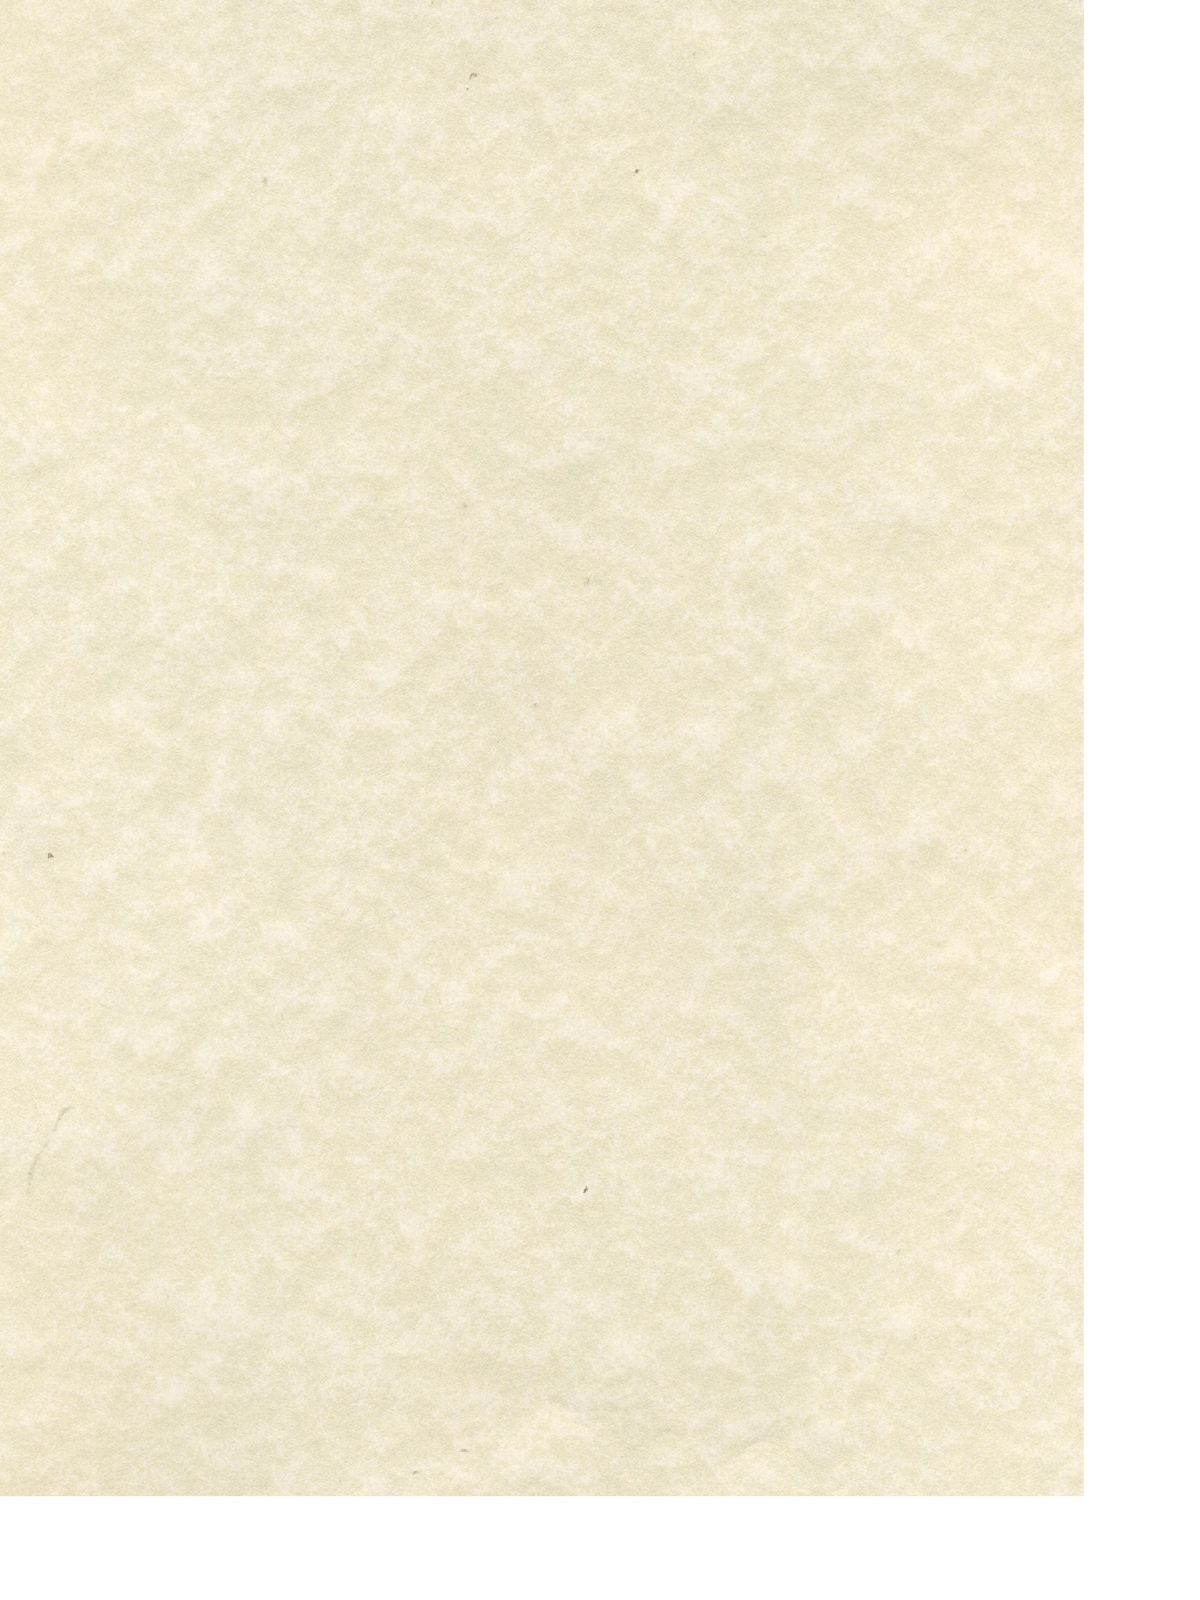 Canson Classic Cream Drawing Paper Sheets